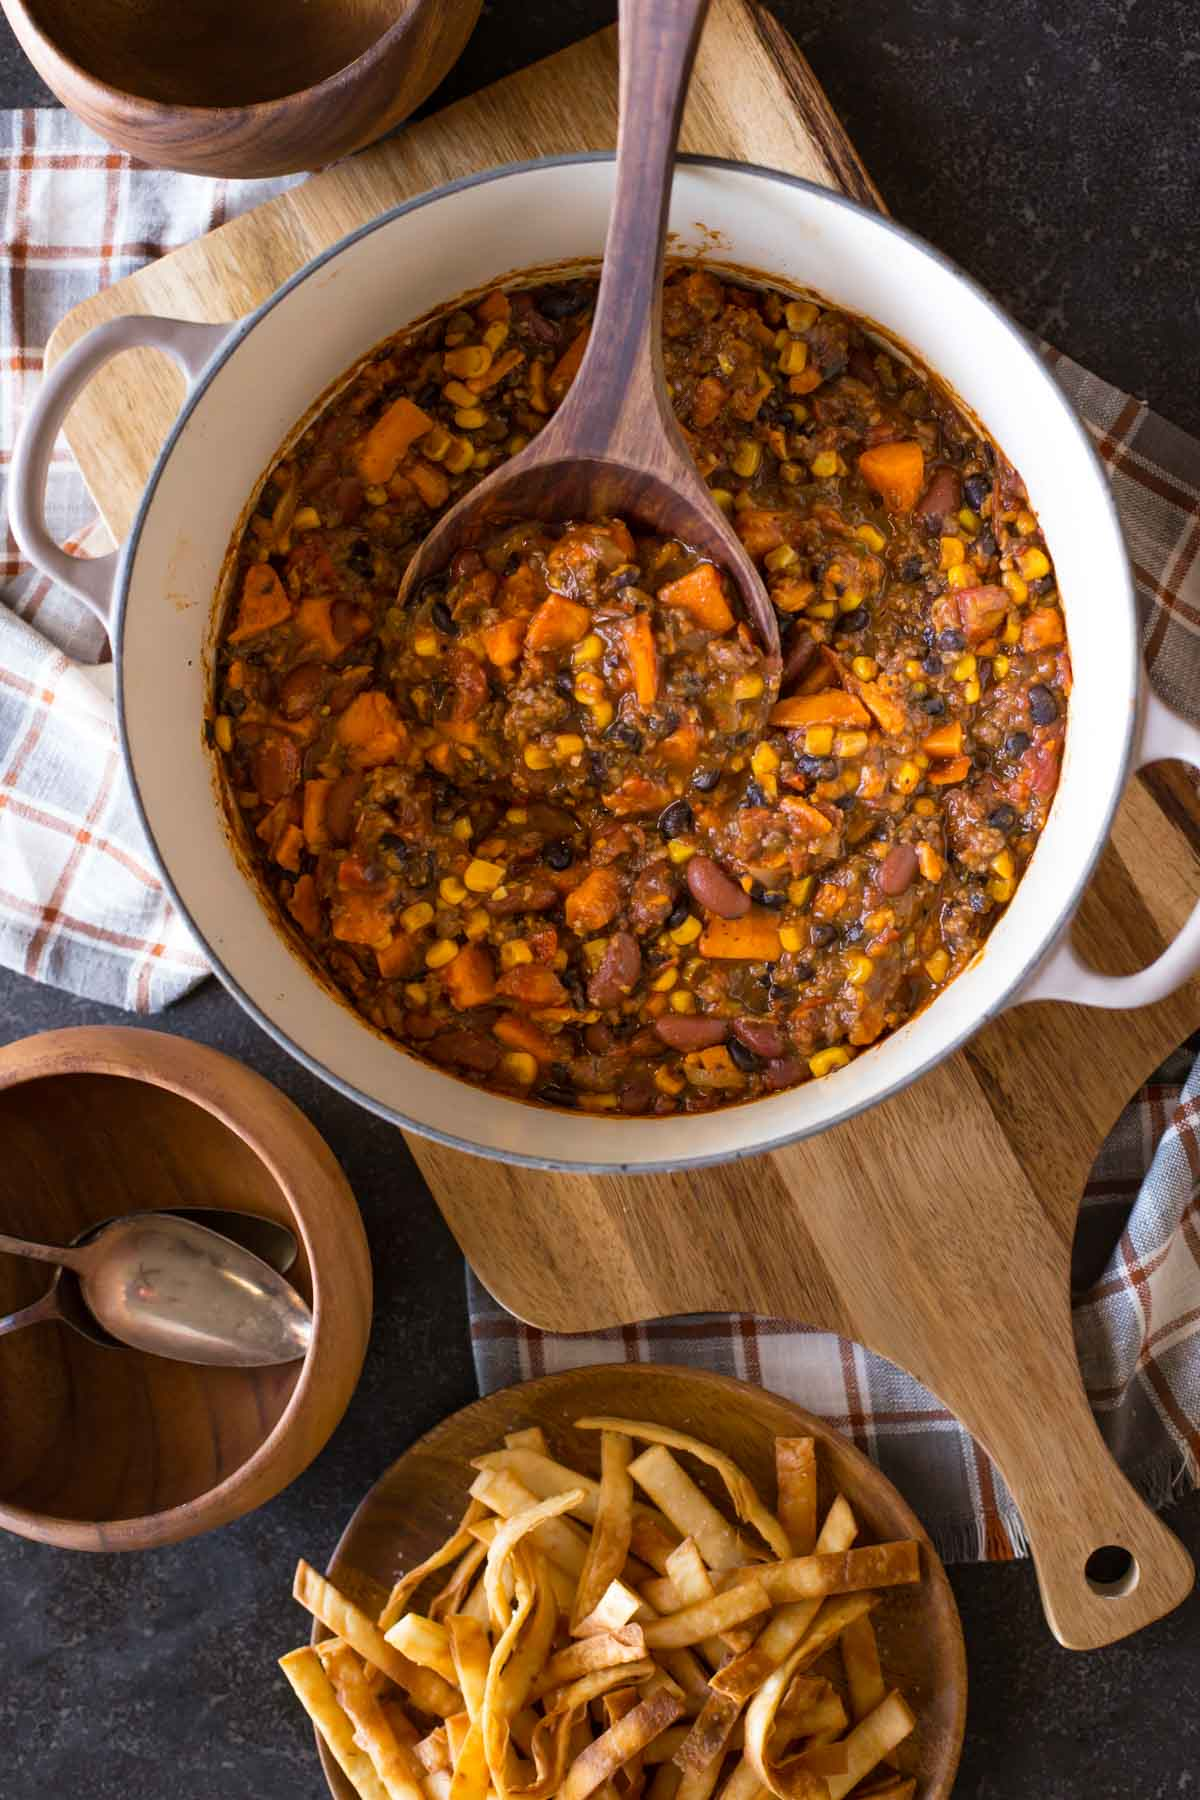 A large pot of Sweet Potato Chili with a wooden spoon in it, and a plate of Fried Tortilla Strips and wood bowls next to the pot.